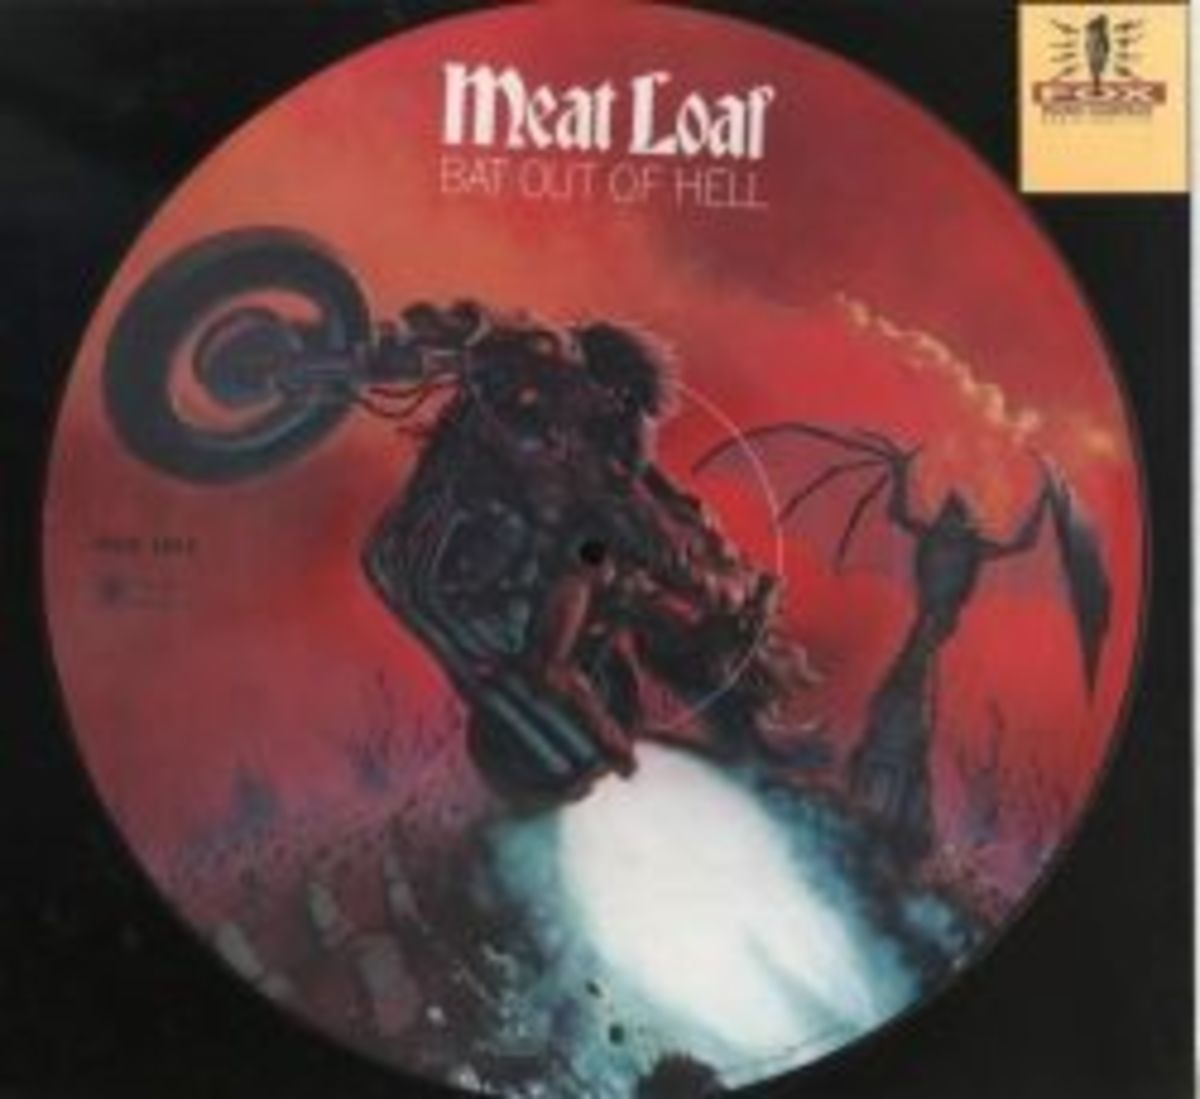 """Meatloaf """"Bat Out Of Hell"""" Epic-Cleavland International Records 34974 12"""" Vinyl Record (1977)  Picture Disc"""